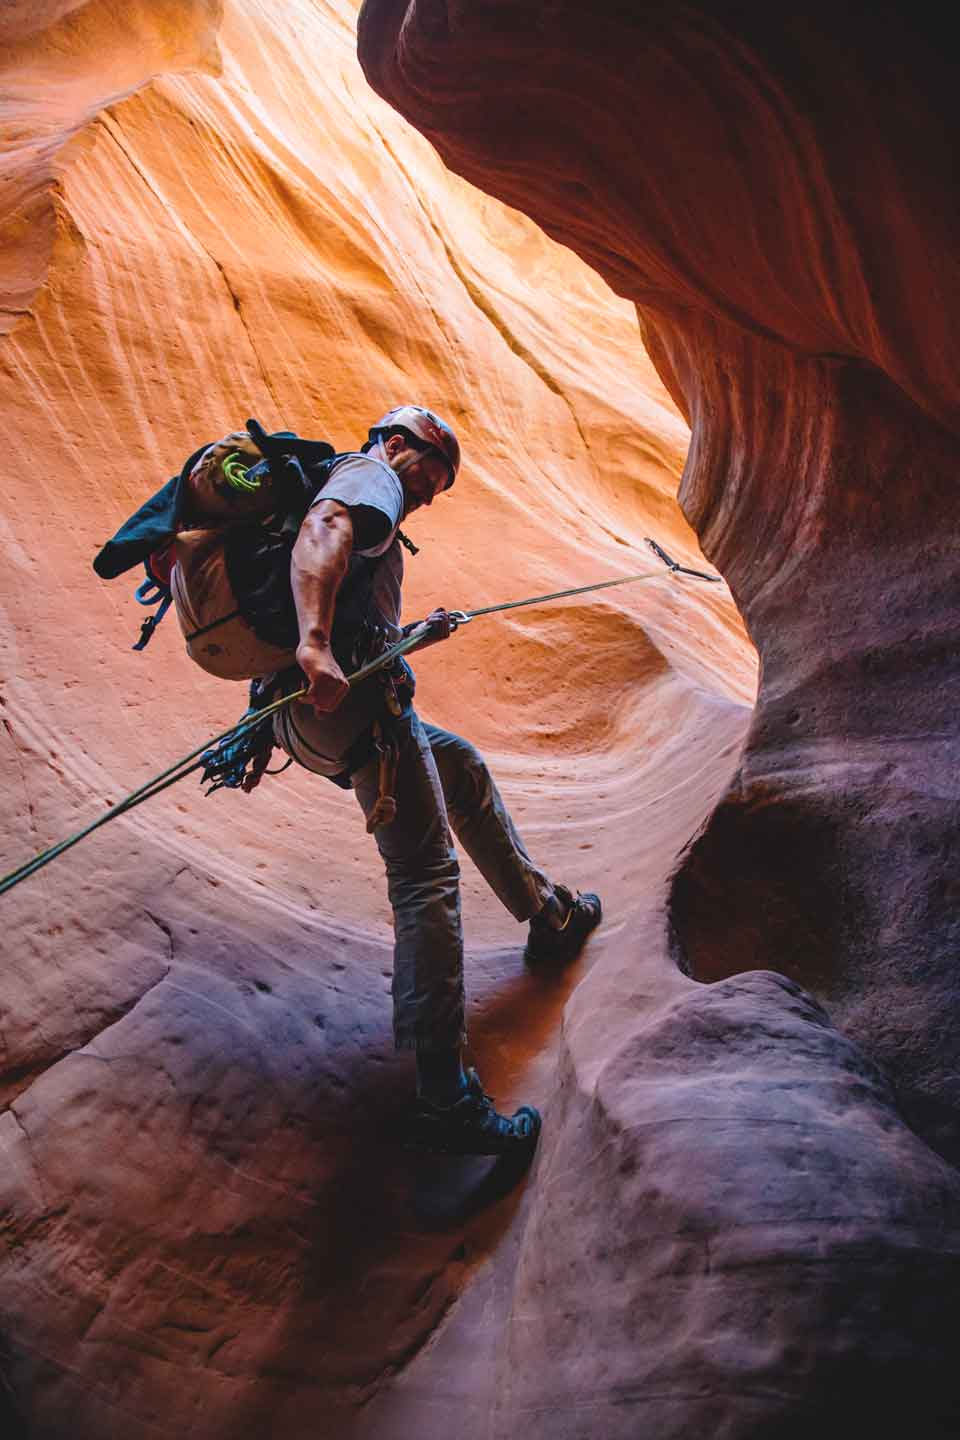 A man repelling into a slot canyon